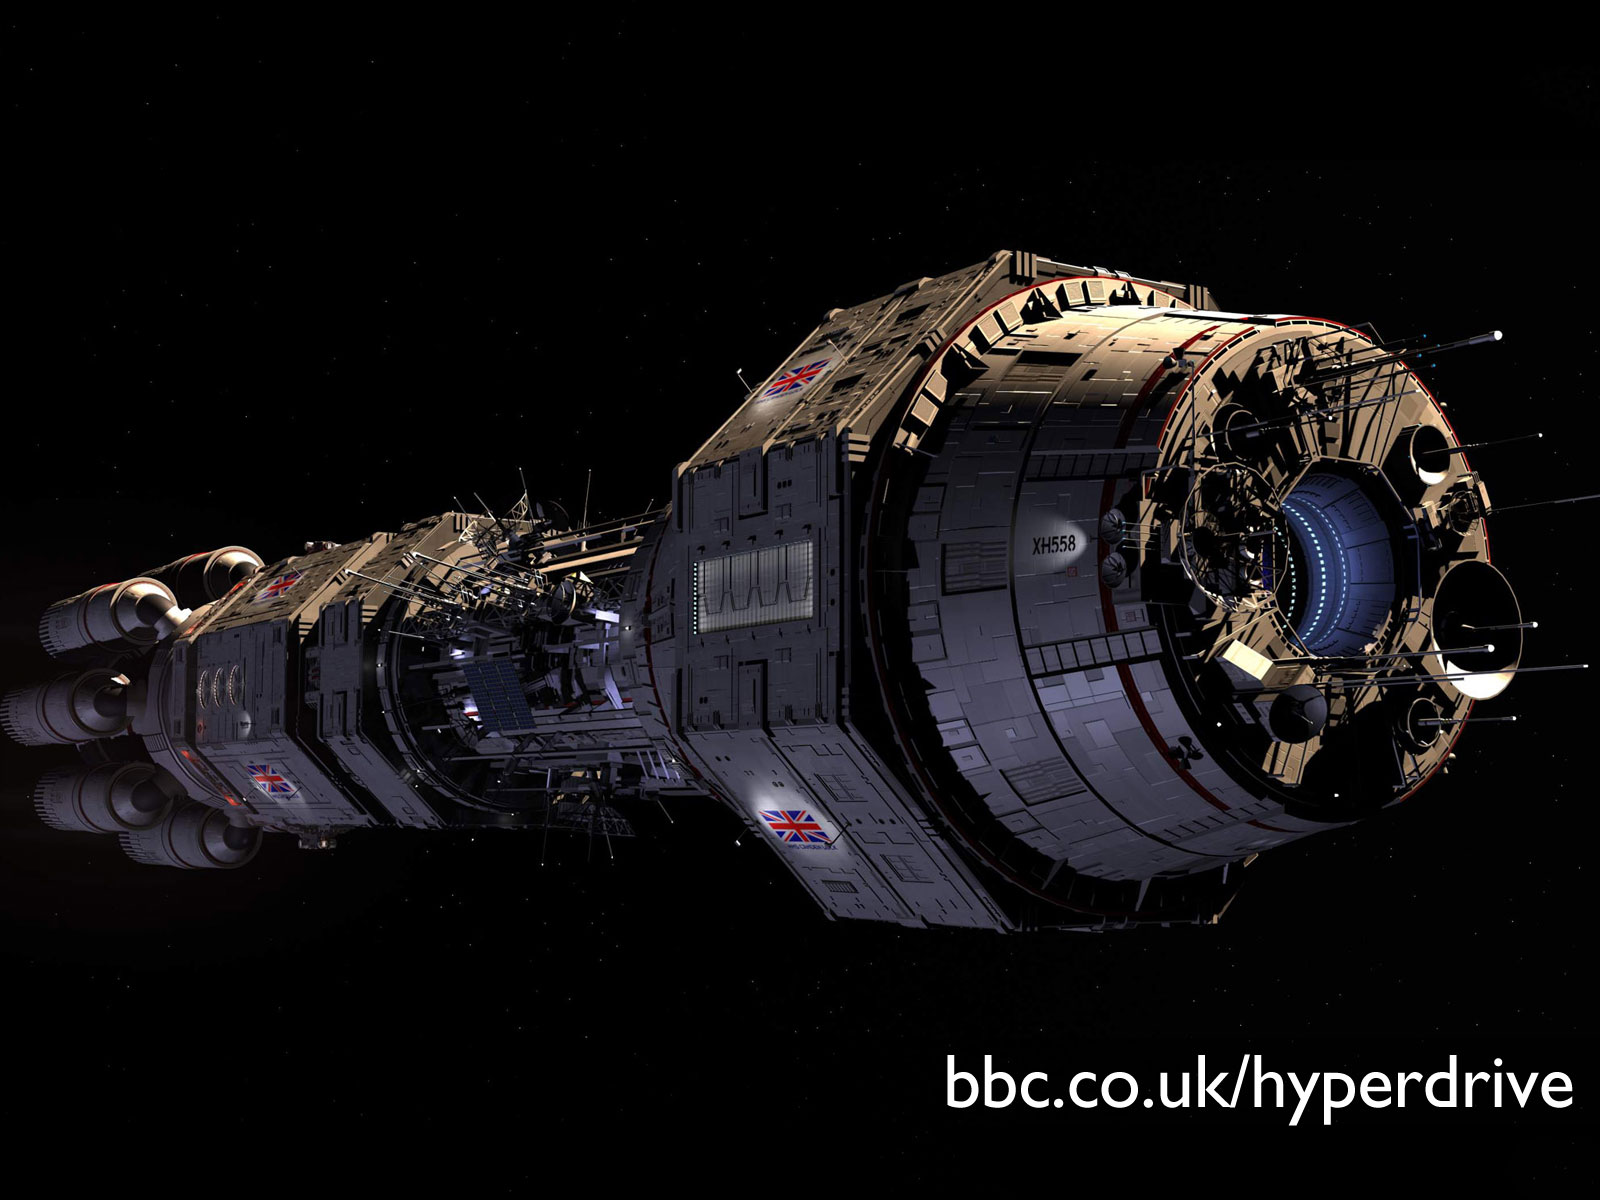 spaceship pictures bbc comedy hyperdrive wallpapers desktop wallpaper 4645